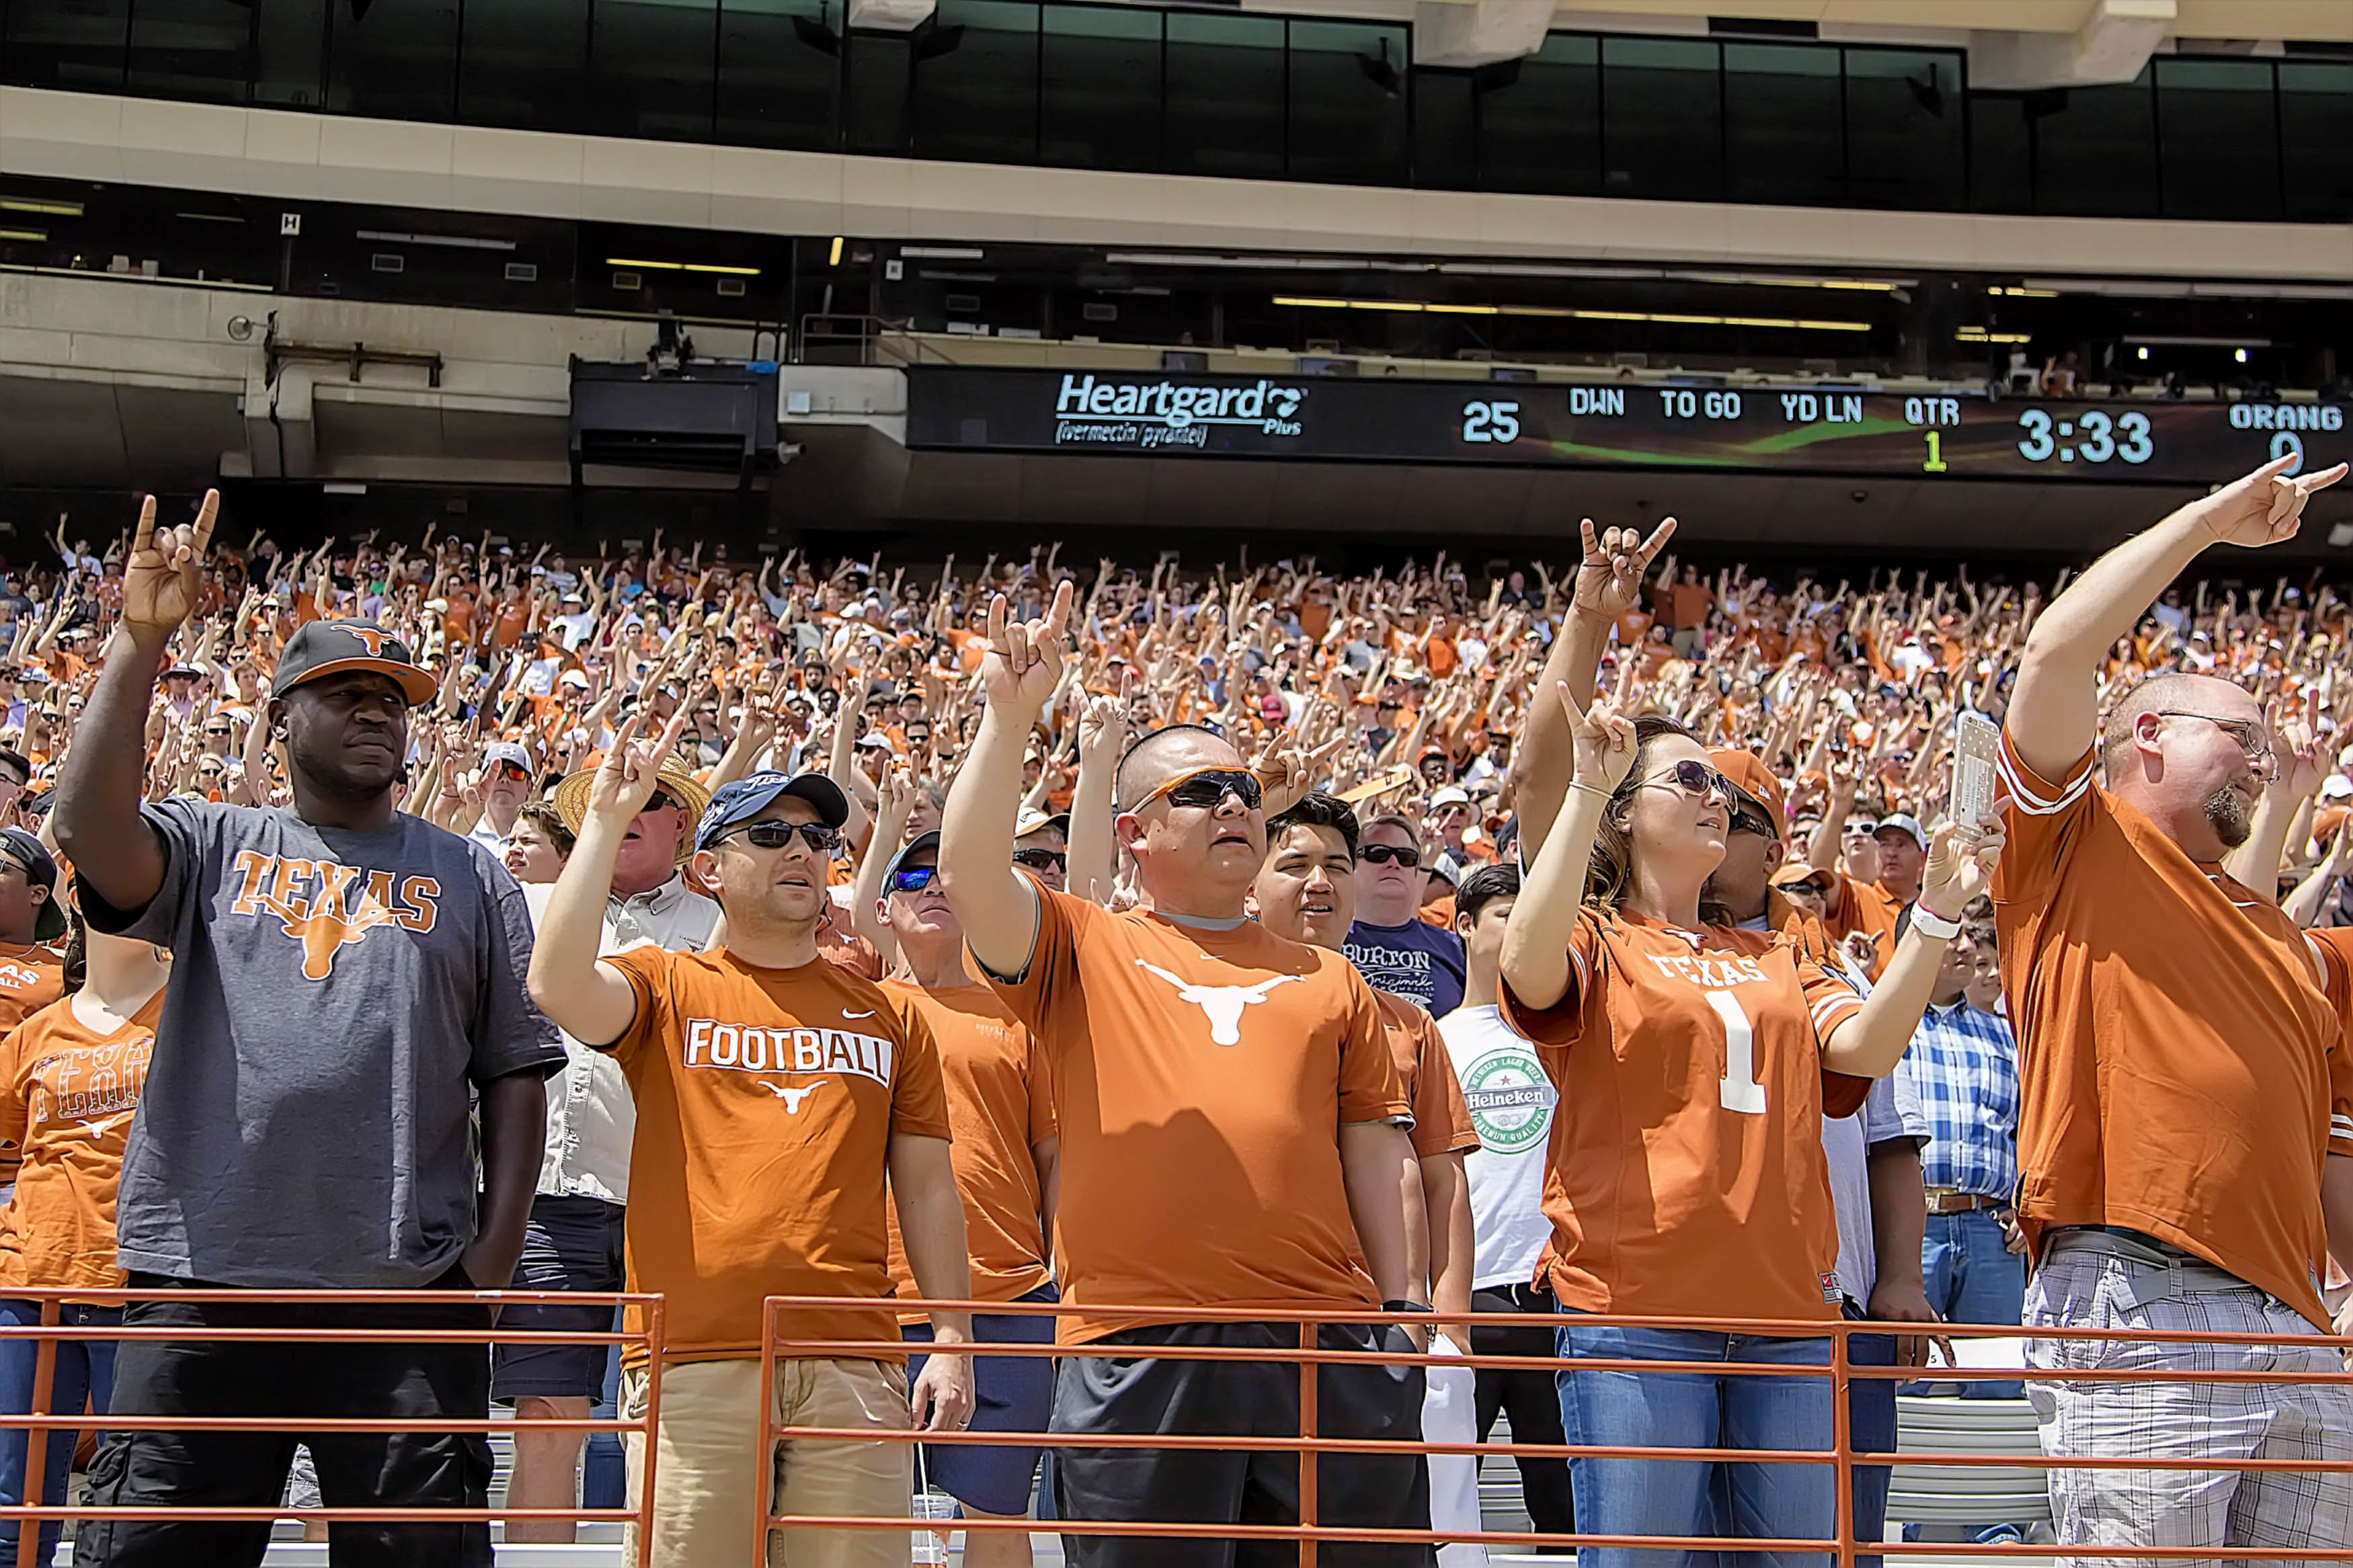 10014731-ncaa-football-texas-spring-game